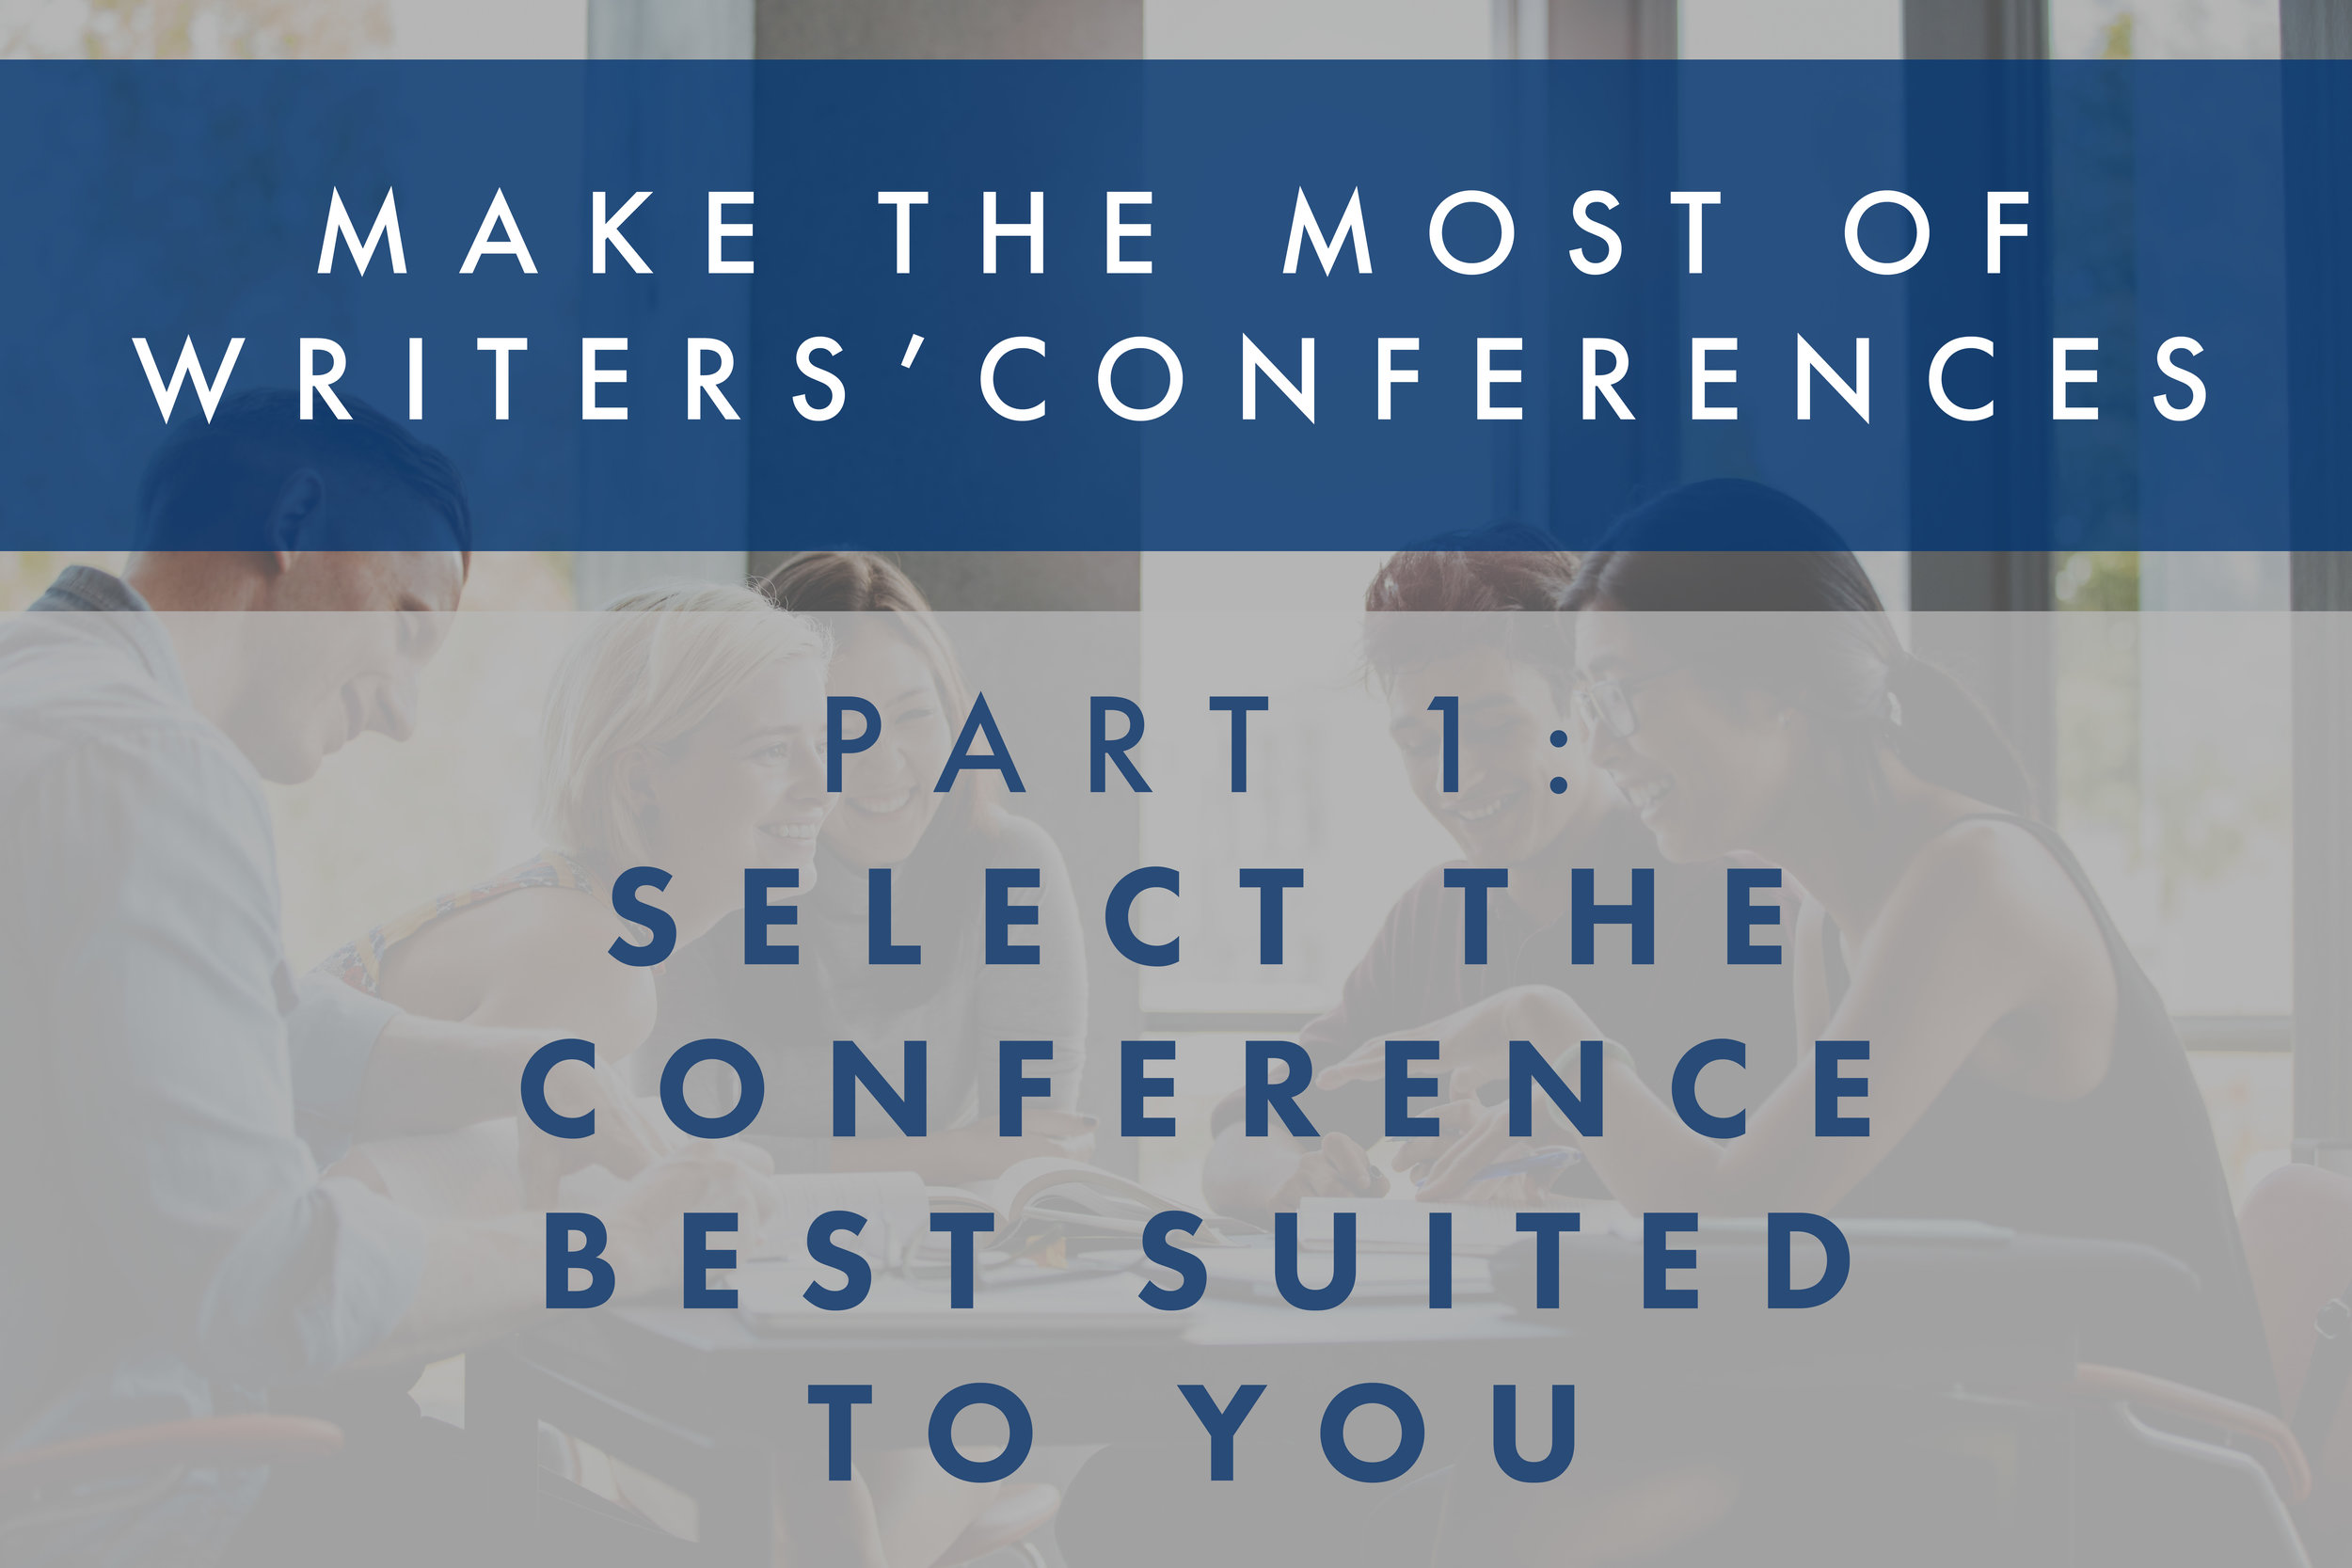 writers conference blog 1.jpg